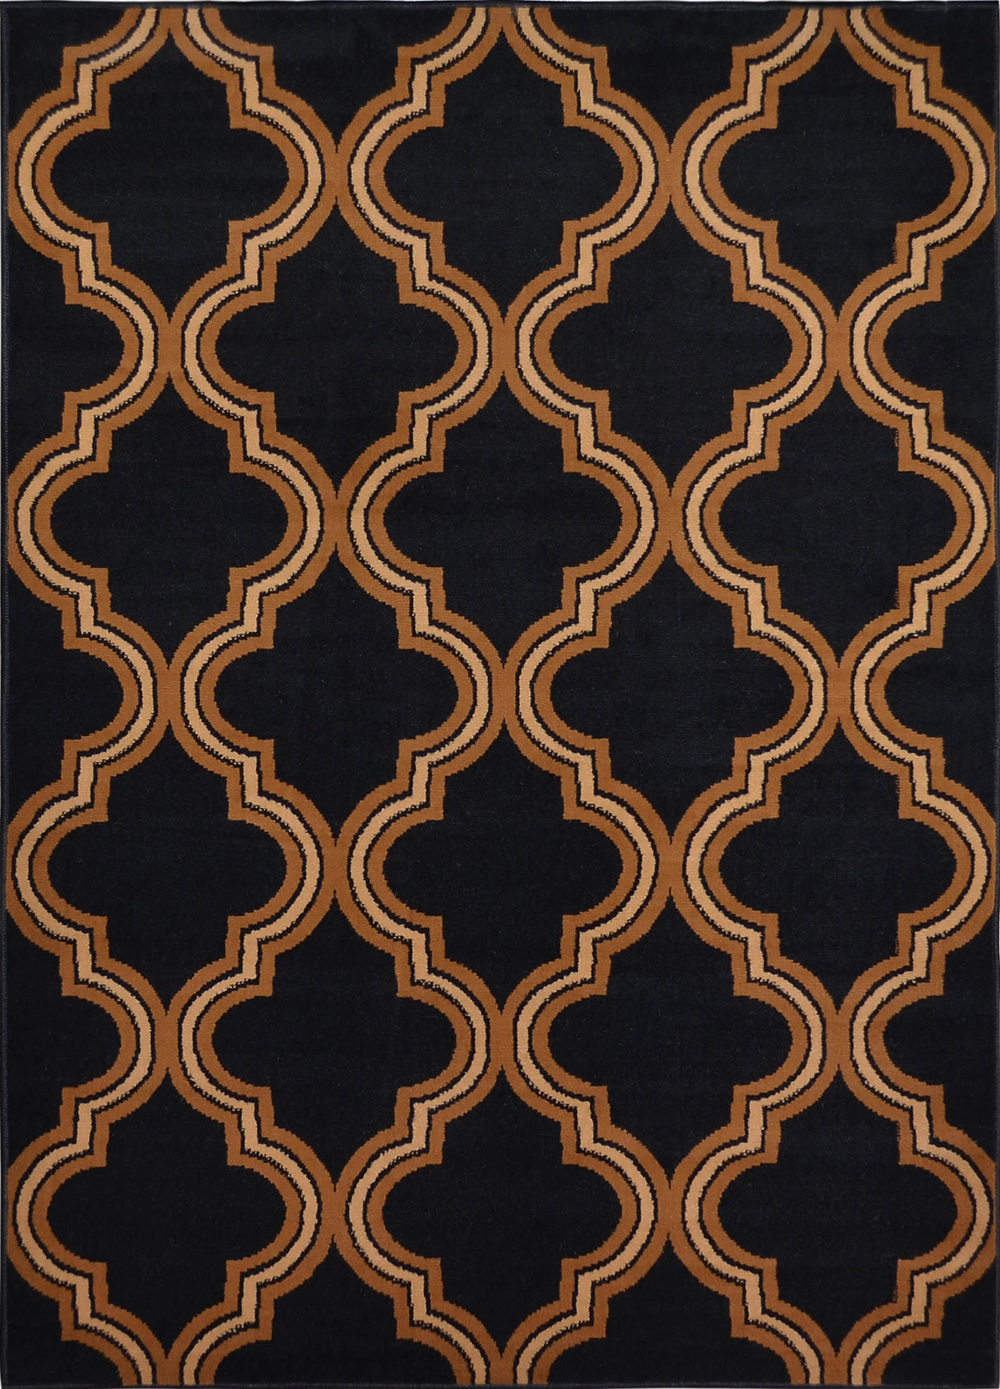 Rugs Area Rugs Carpet Floor Area Rug Modern Trellis Lattice Moroccan Tile  Contemporary Black Carpet